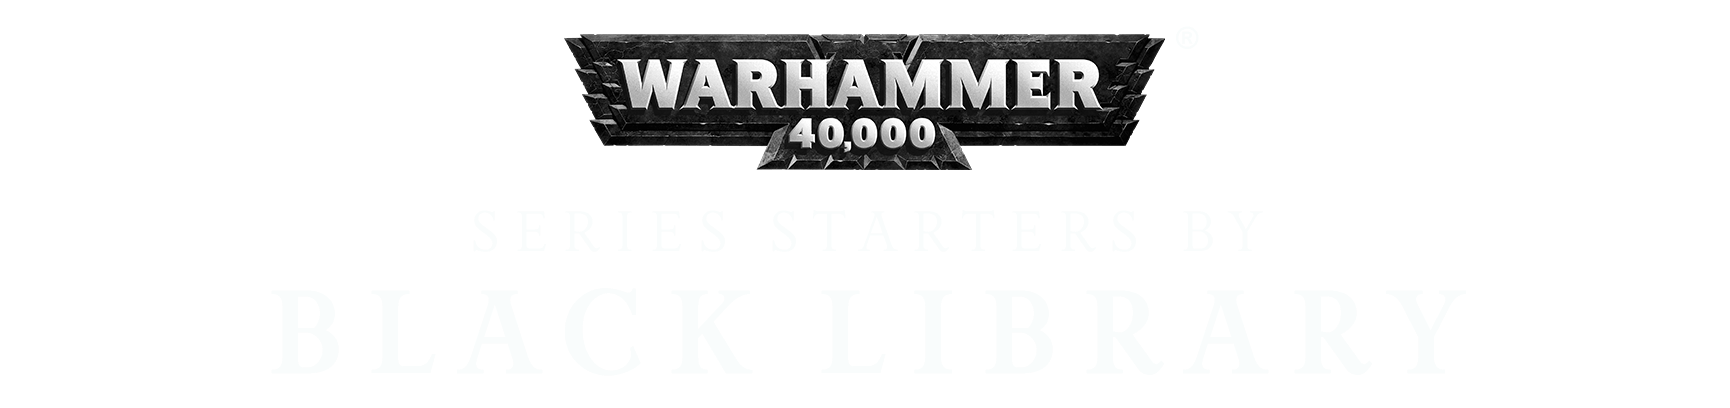 Humble Book Bundle: Warhammer 40,000 Series Starters by Black Library